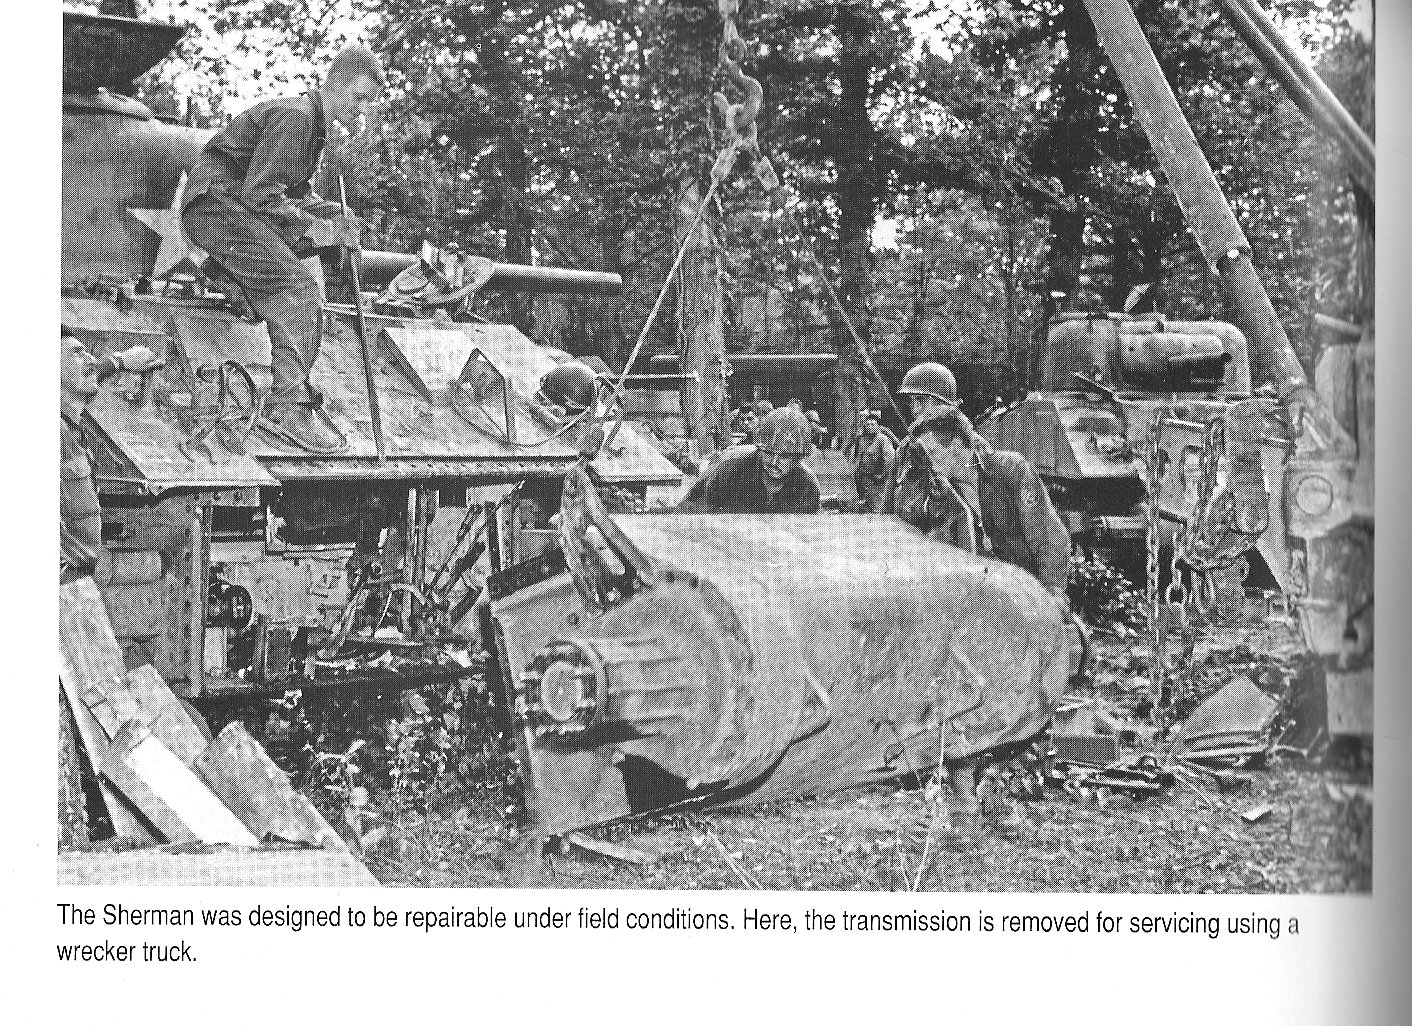 Sherman transmission